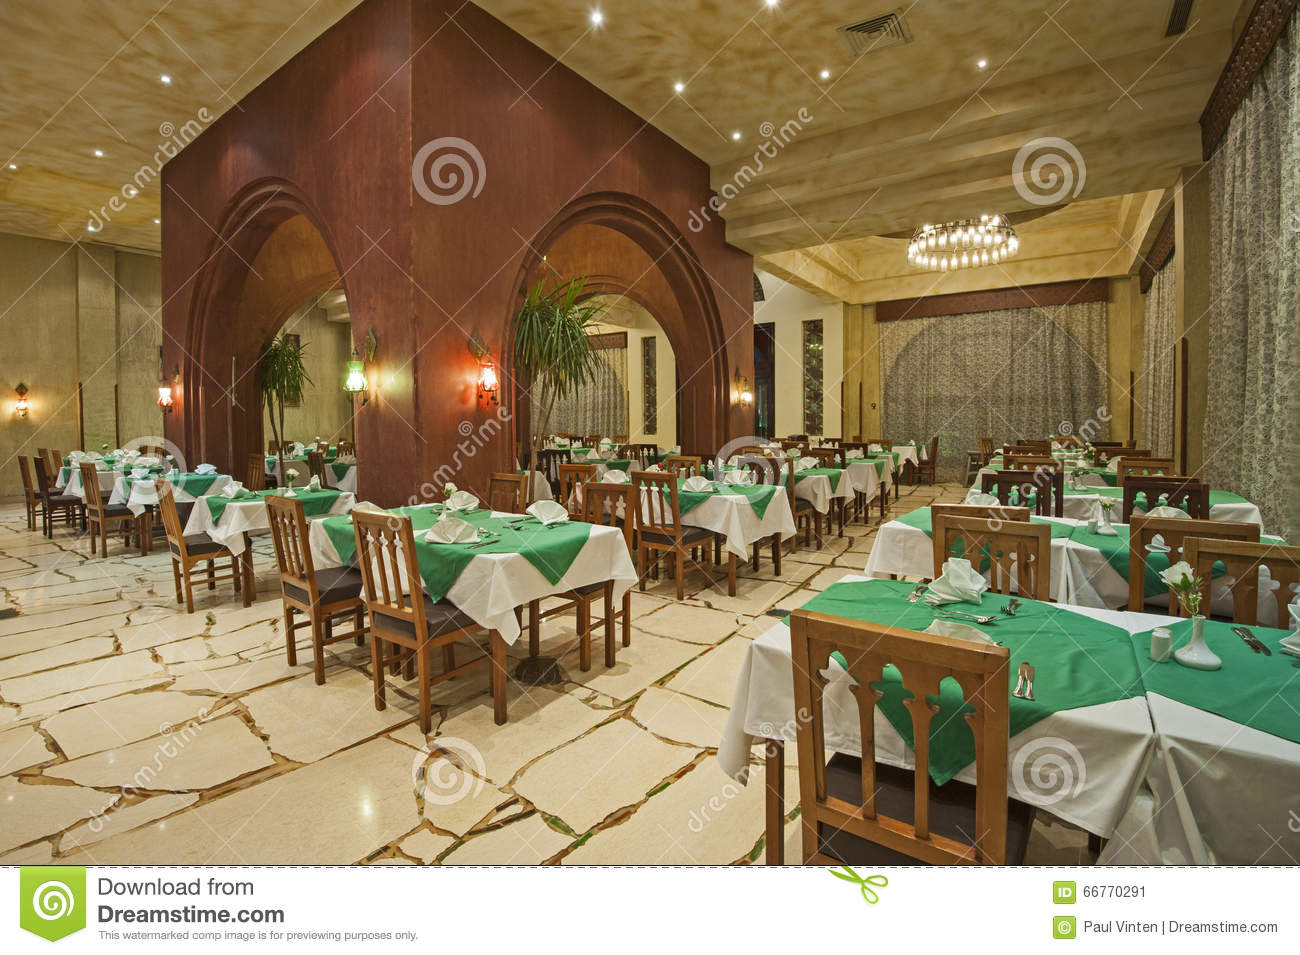 Interior Of A Luxury Hotel Restaurant Stock Image Image Of Ornate Holiday 66770291